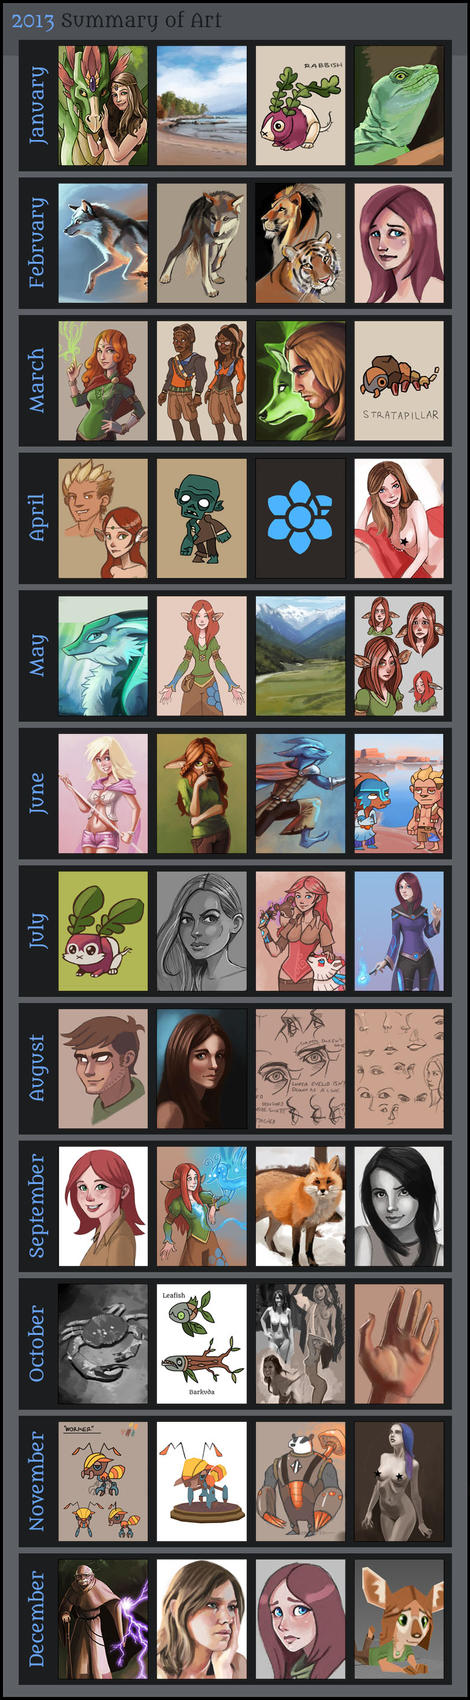 2013 Summary of Art by Pseudolonewolf